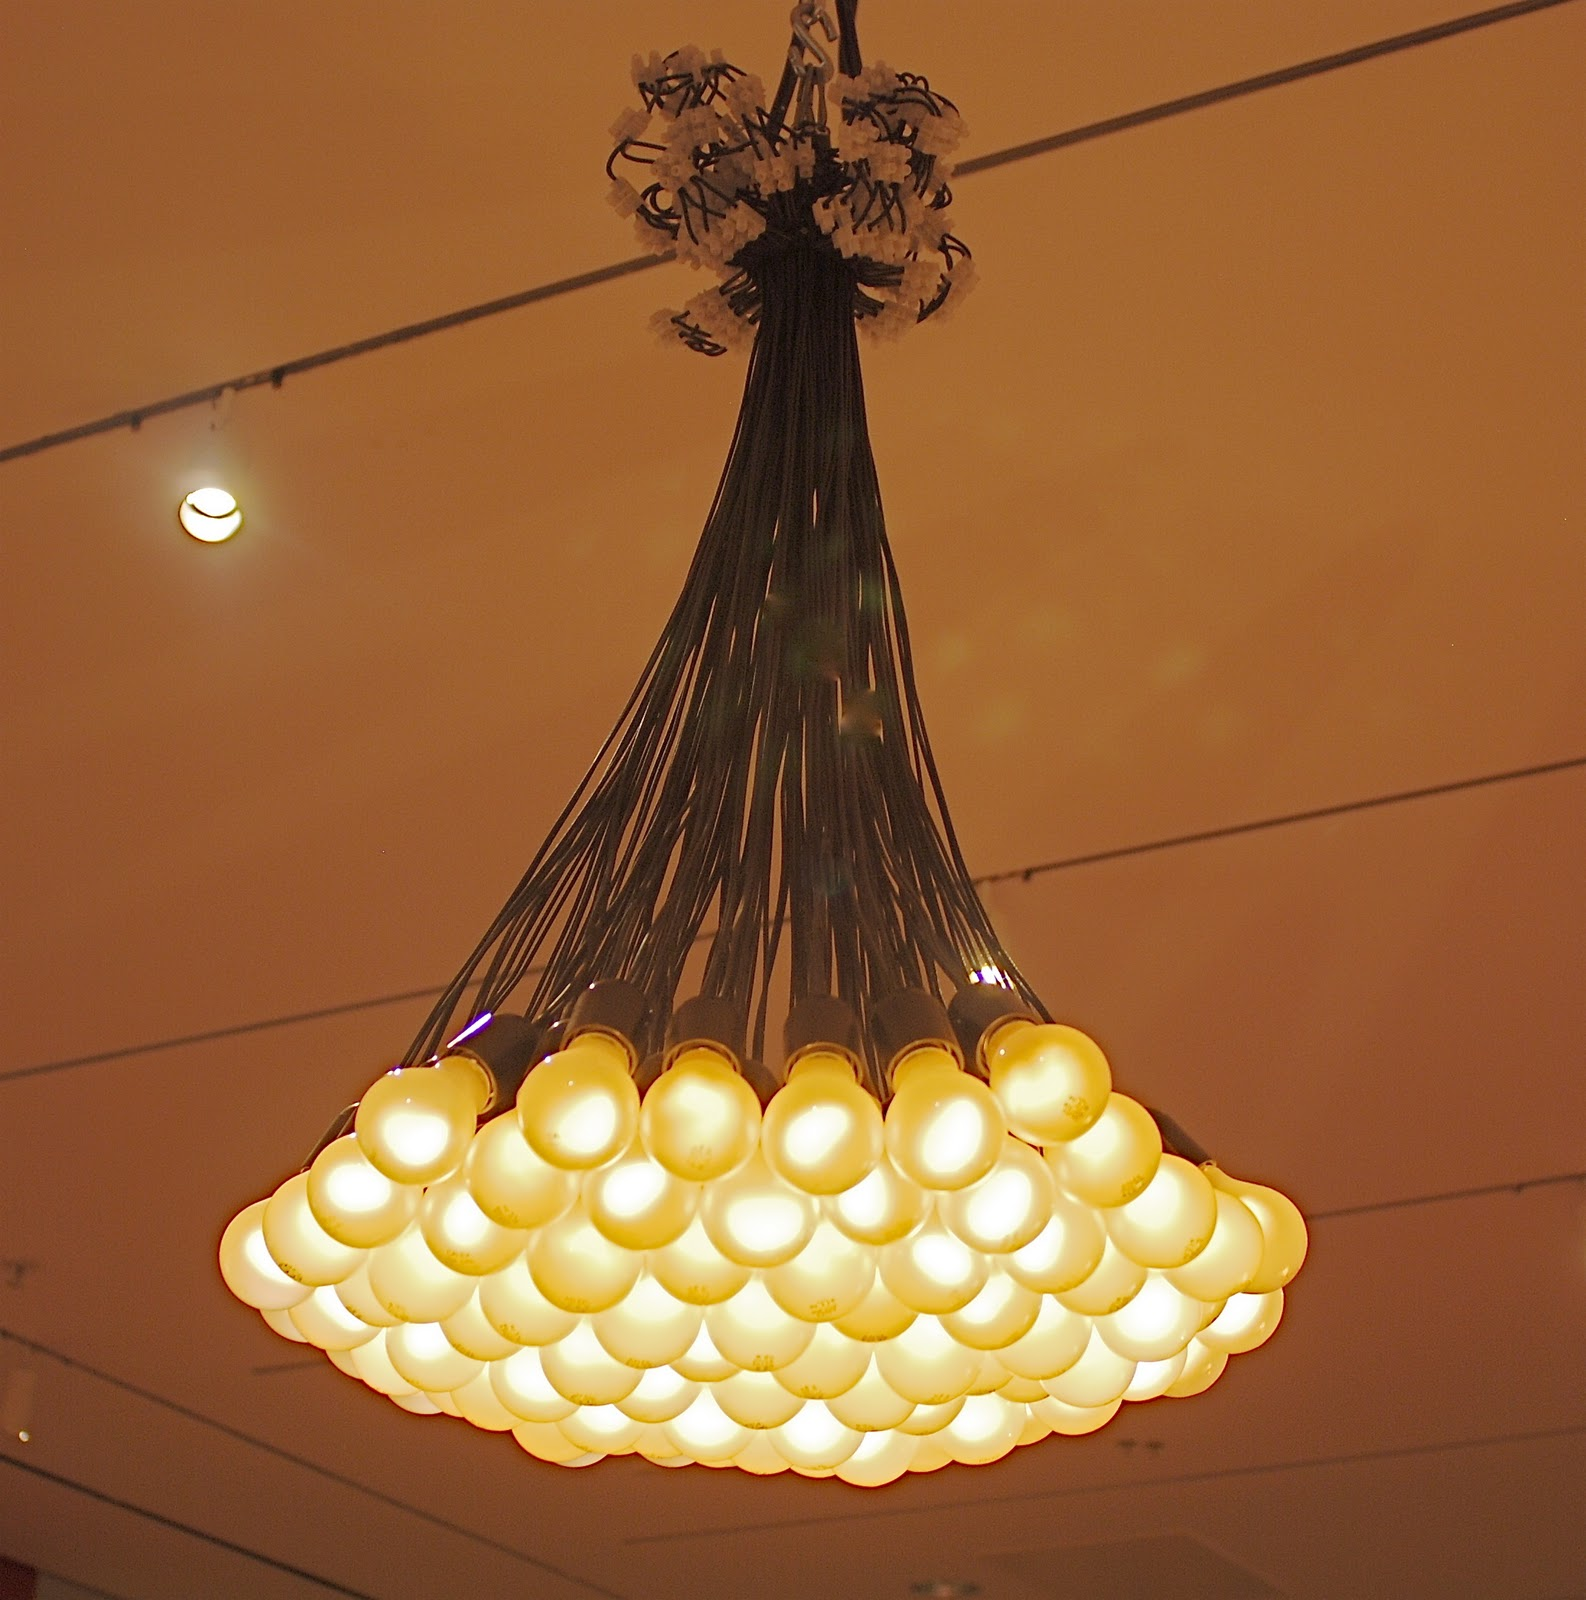 Nyc nyc 85 lamps lighting fixture by rody graumans